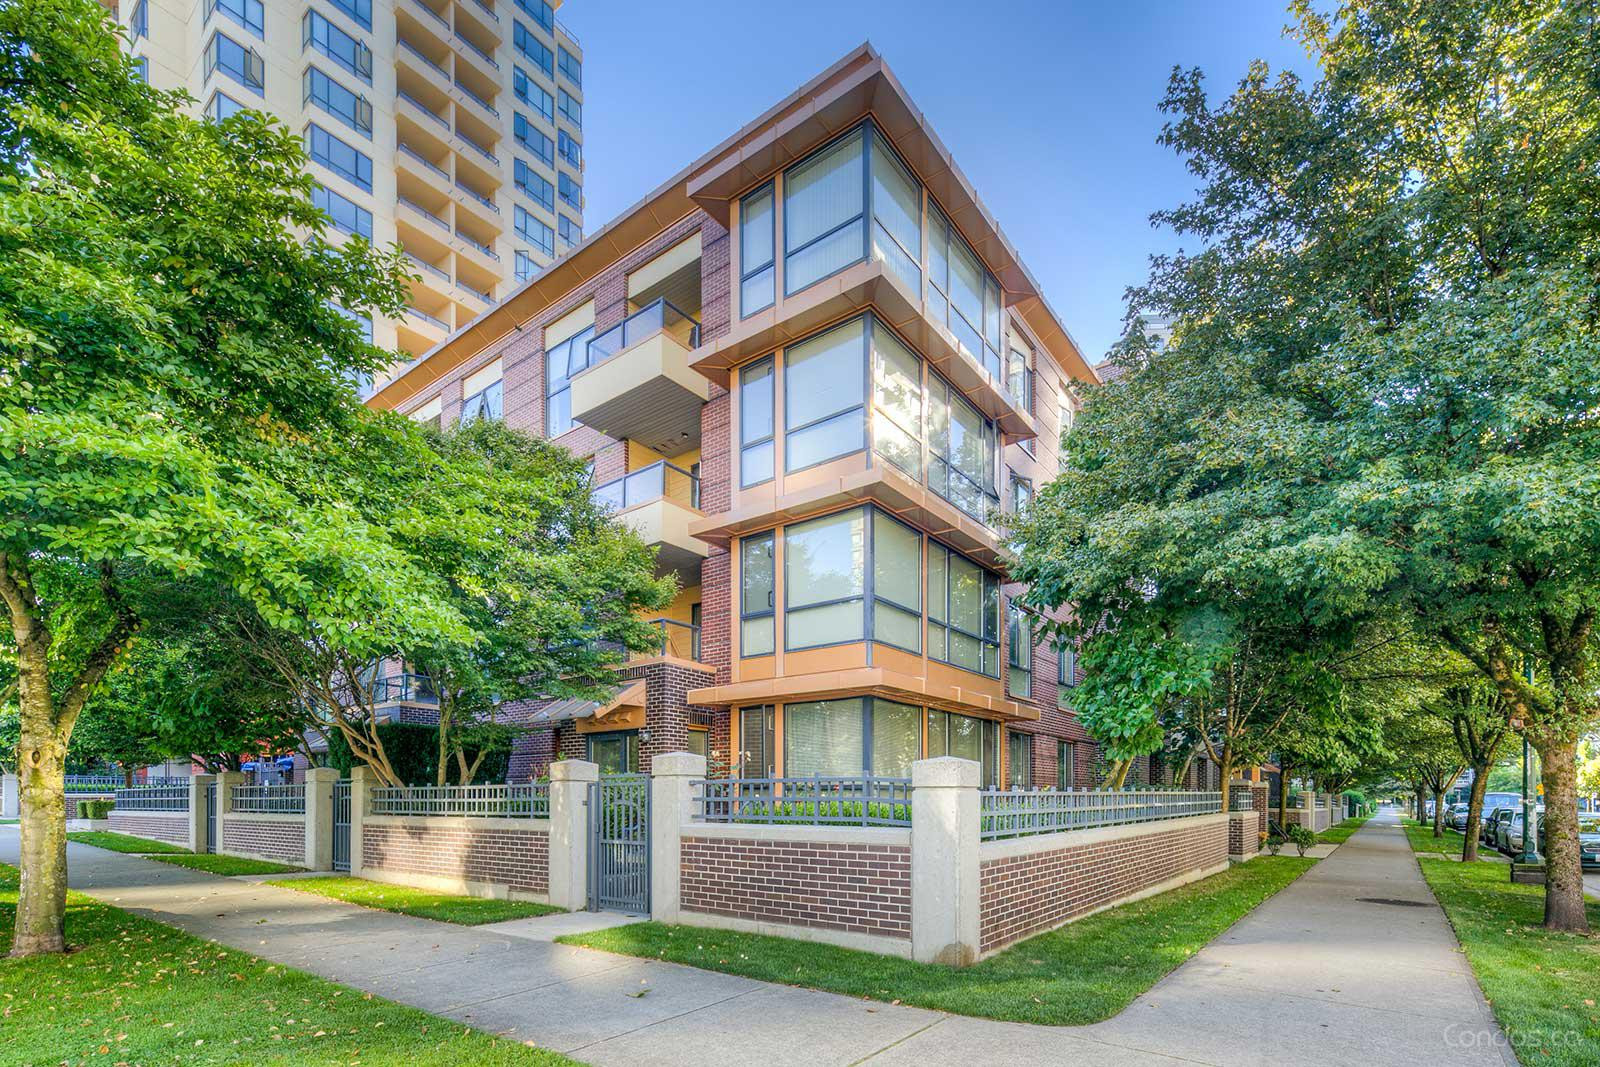 Amberley at 3583 Crowley Dr, Vancouver 0